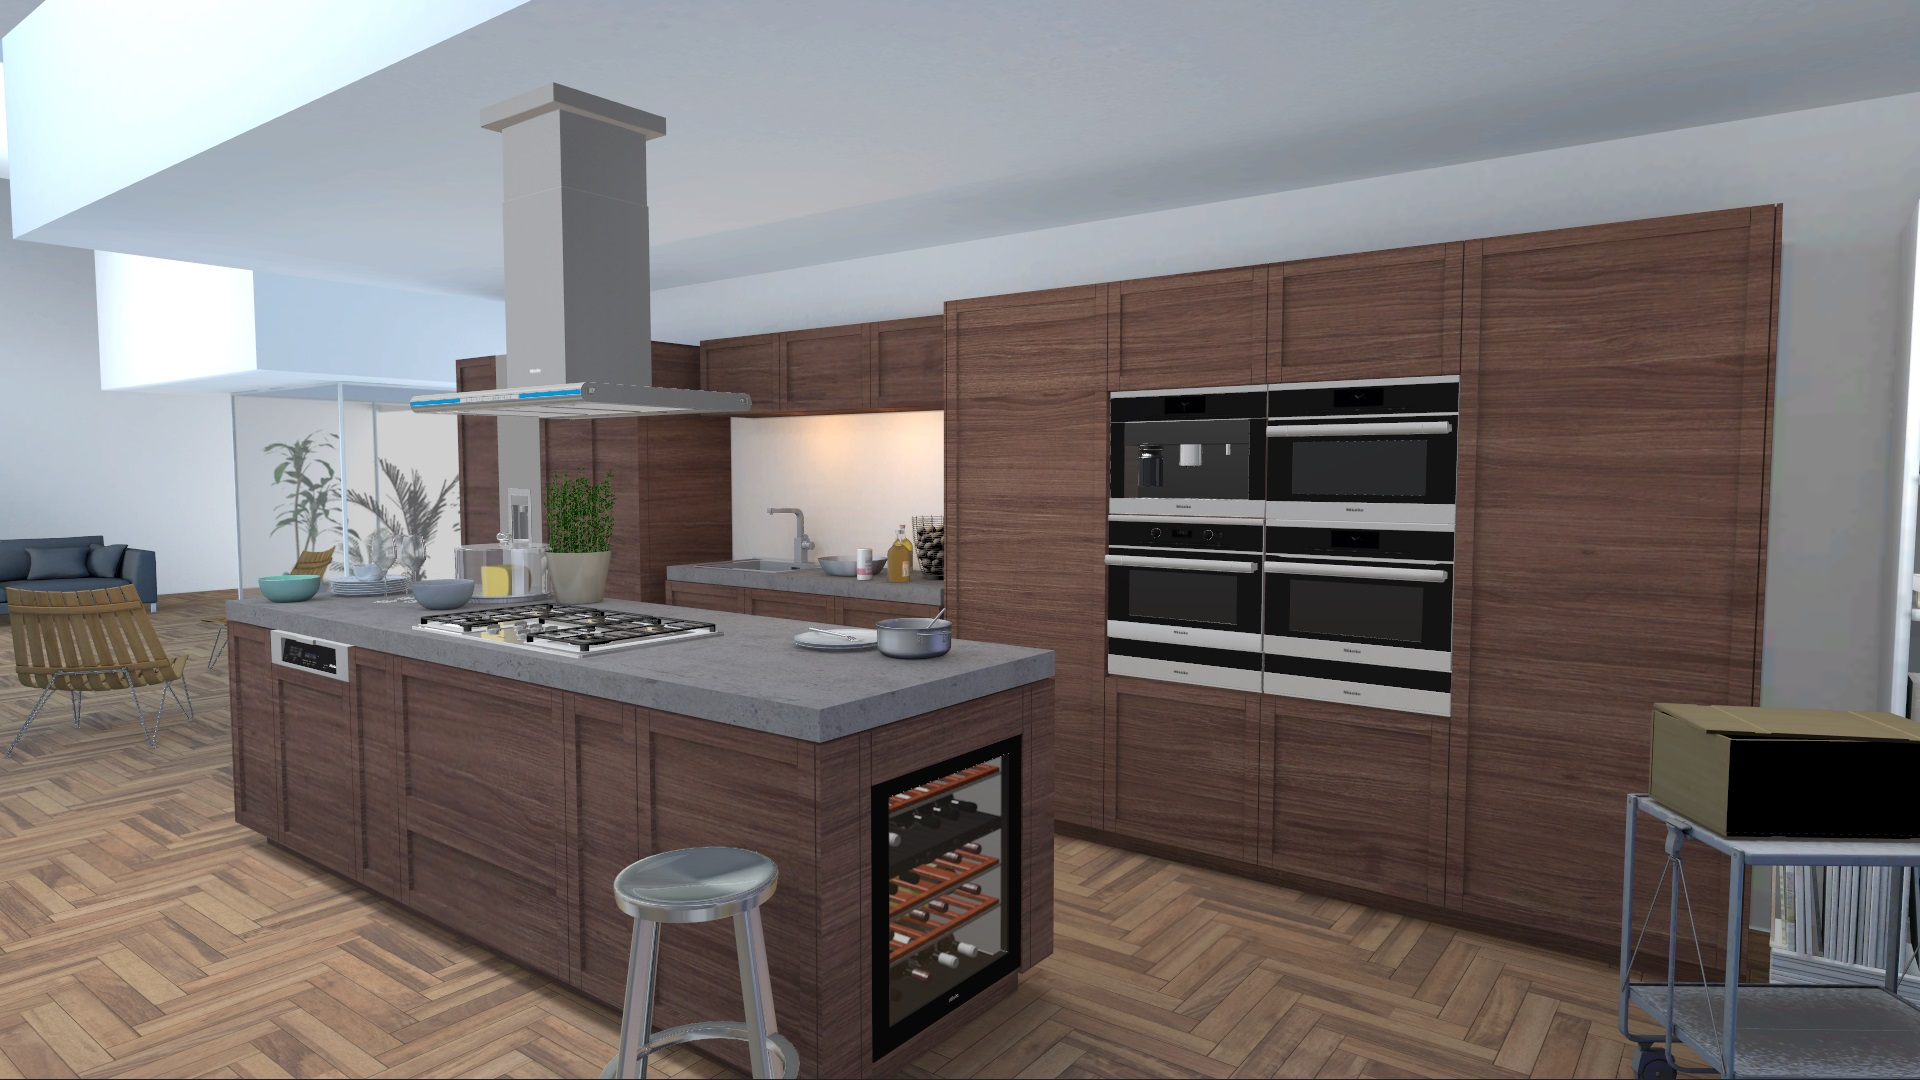 miele kitchen appliance visualizer kueche mit parkettboden